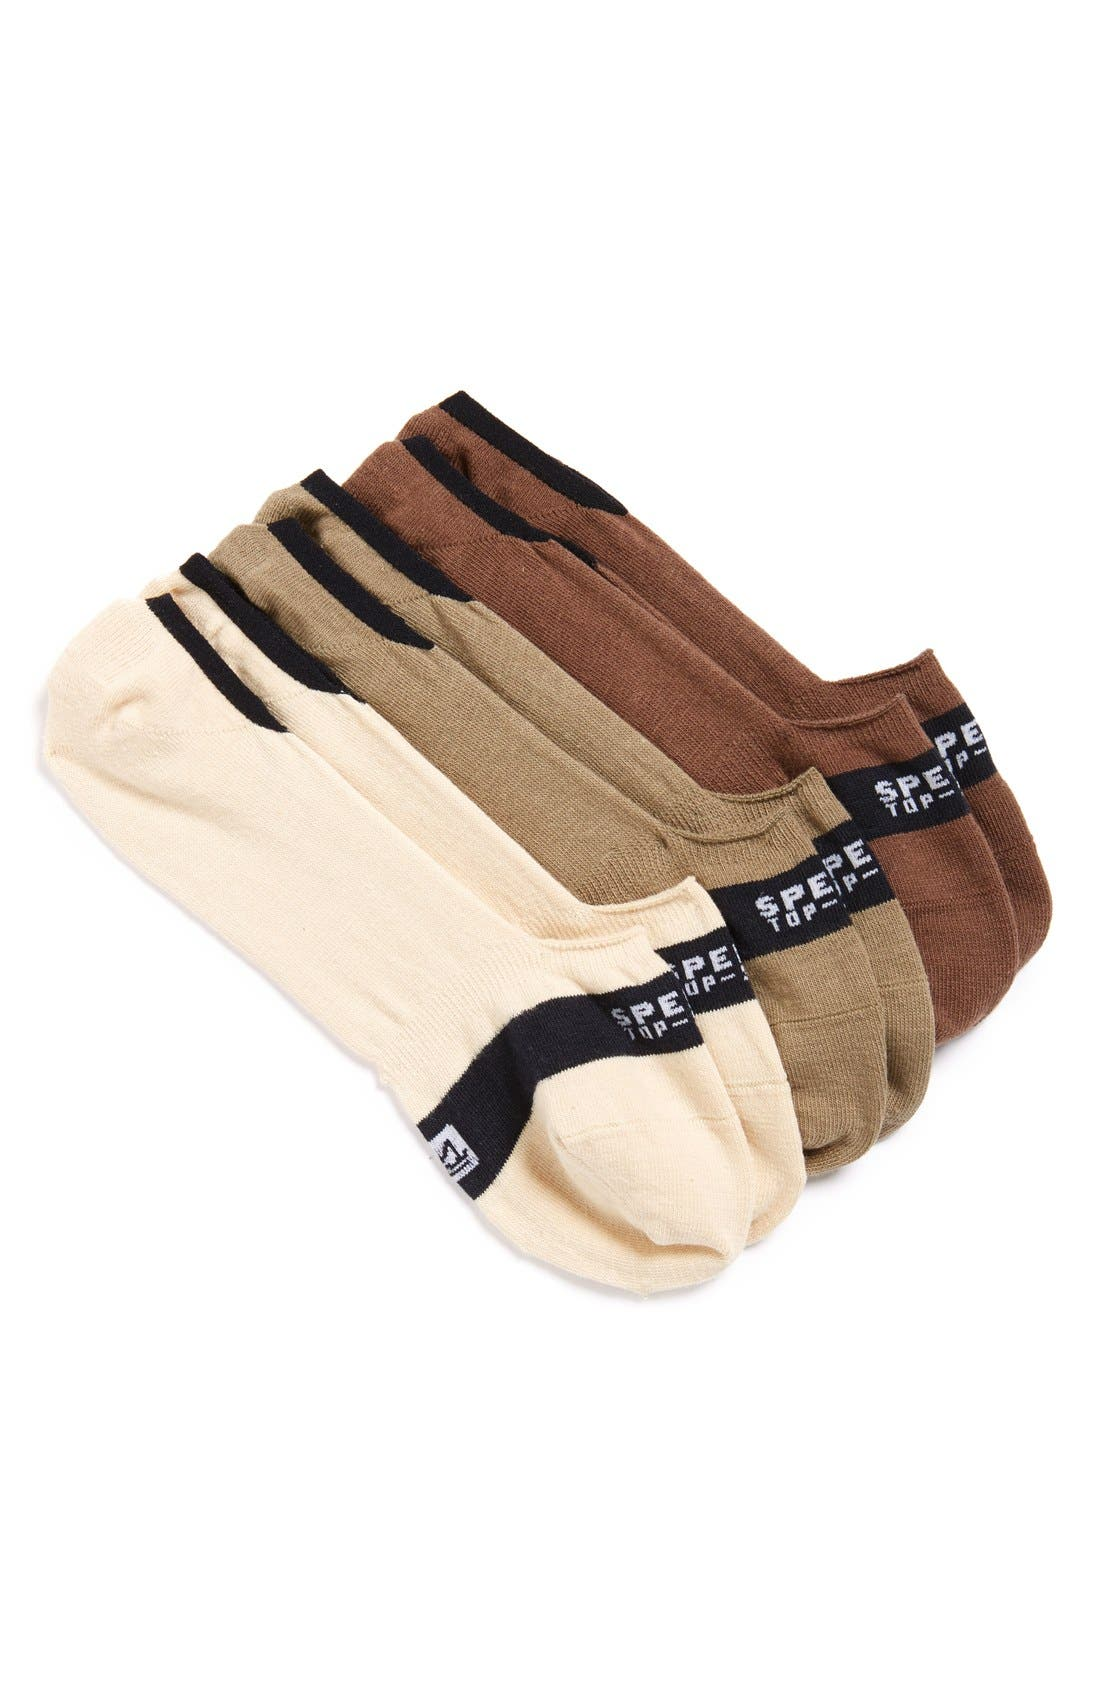 Sperry Cotton Blend No-Show Socks (Assorted 3-Pack)